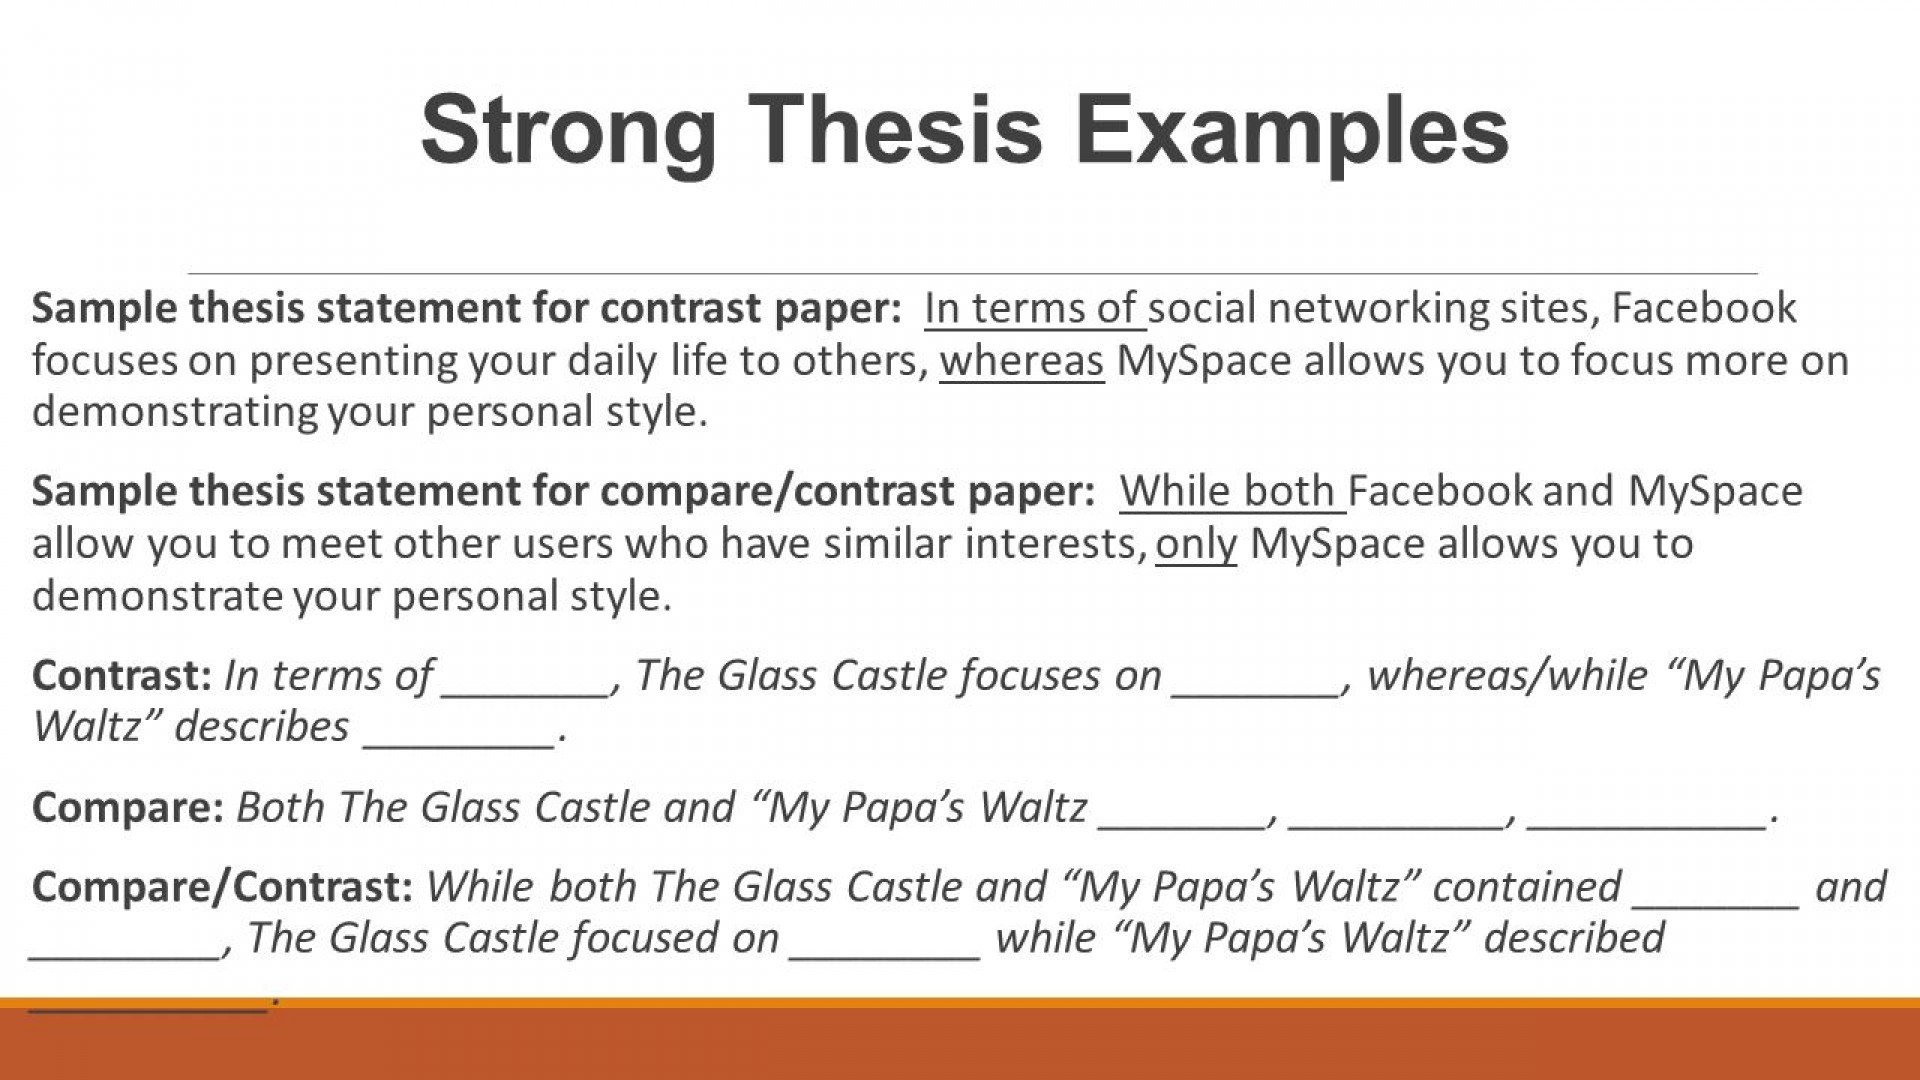 002 Essay Example Compare And Contrast Thesis Sample Paper Comparecontrast Statement For Argumentative On Social Media Remarkable Comparison Examples Template Ap World History 1920